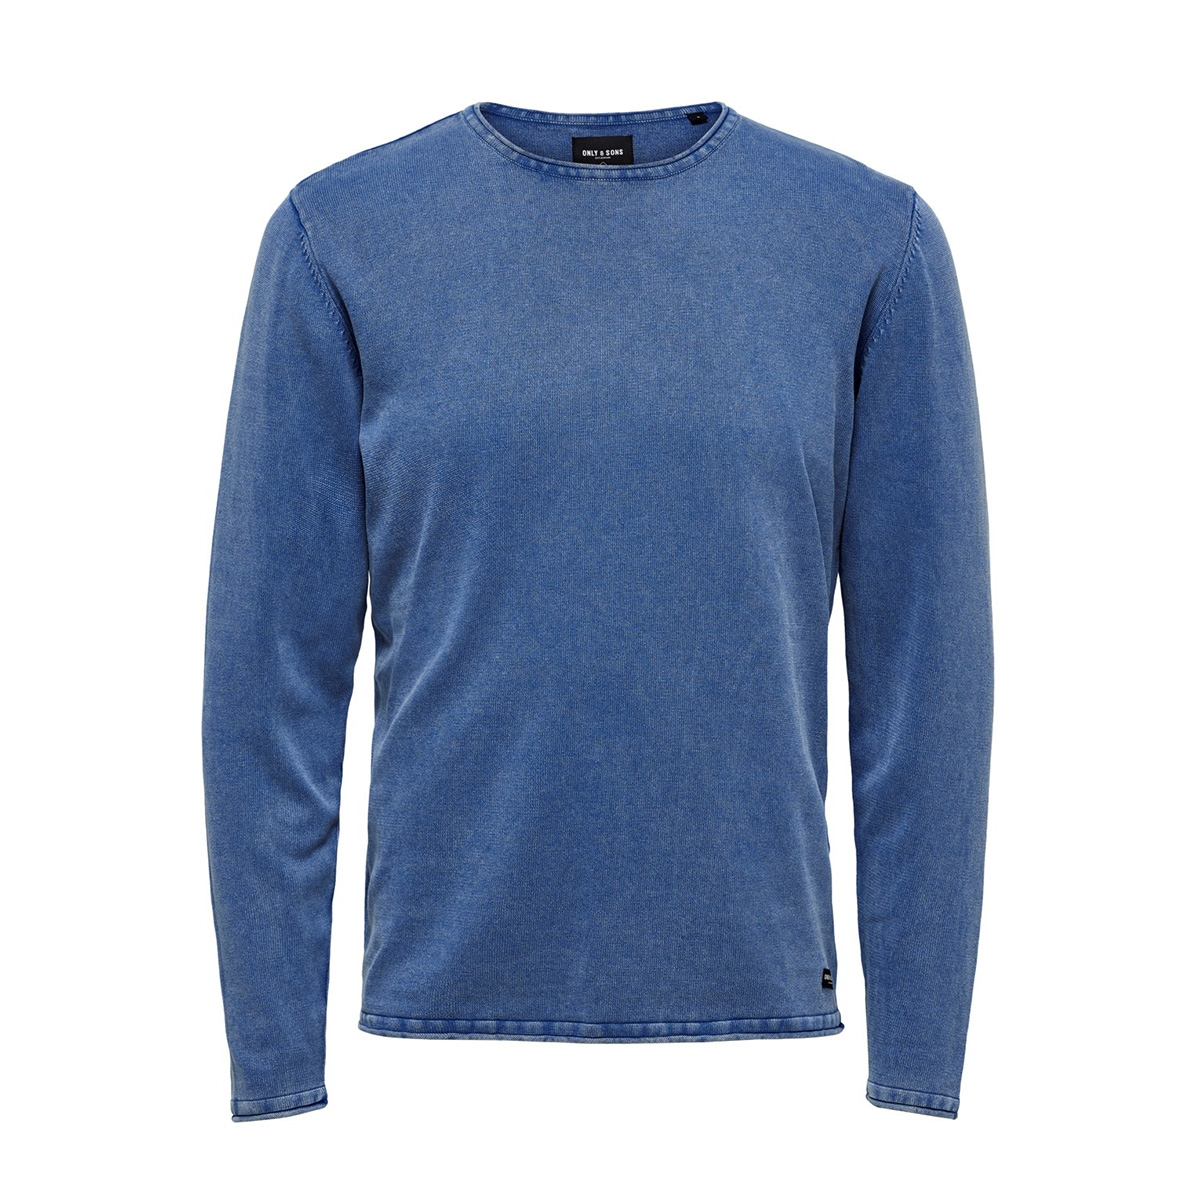 onsgarson wash crew neck knit noos 22006806 only & sons trui baleine blue